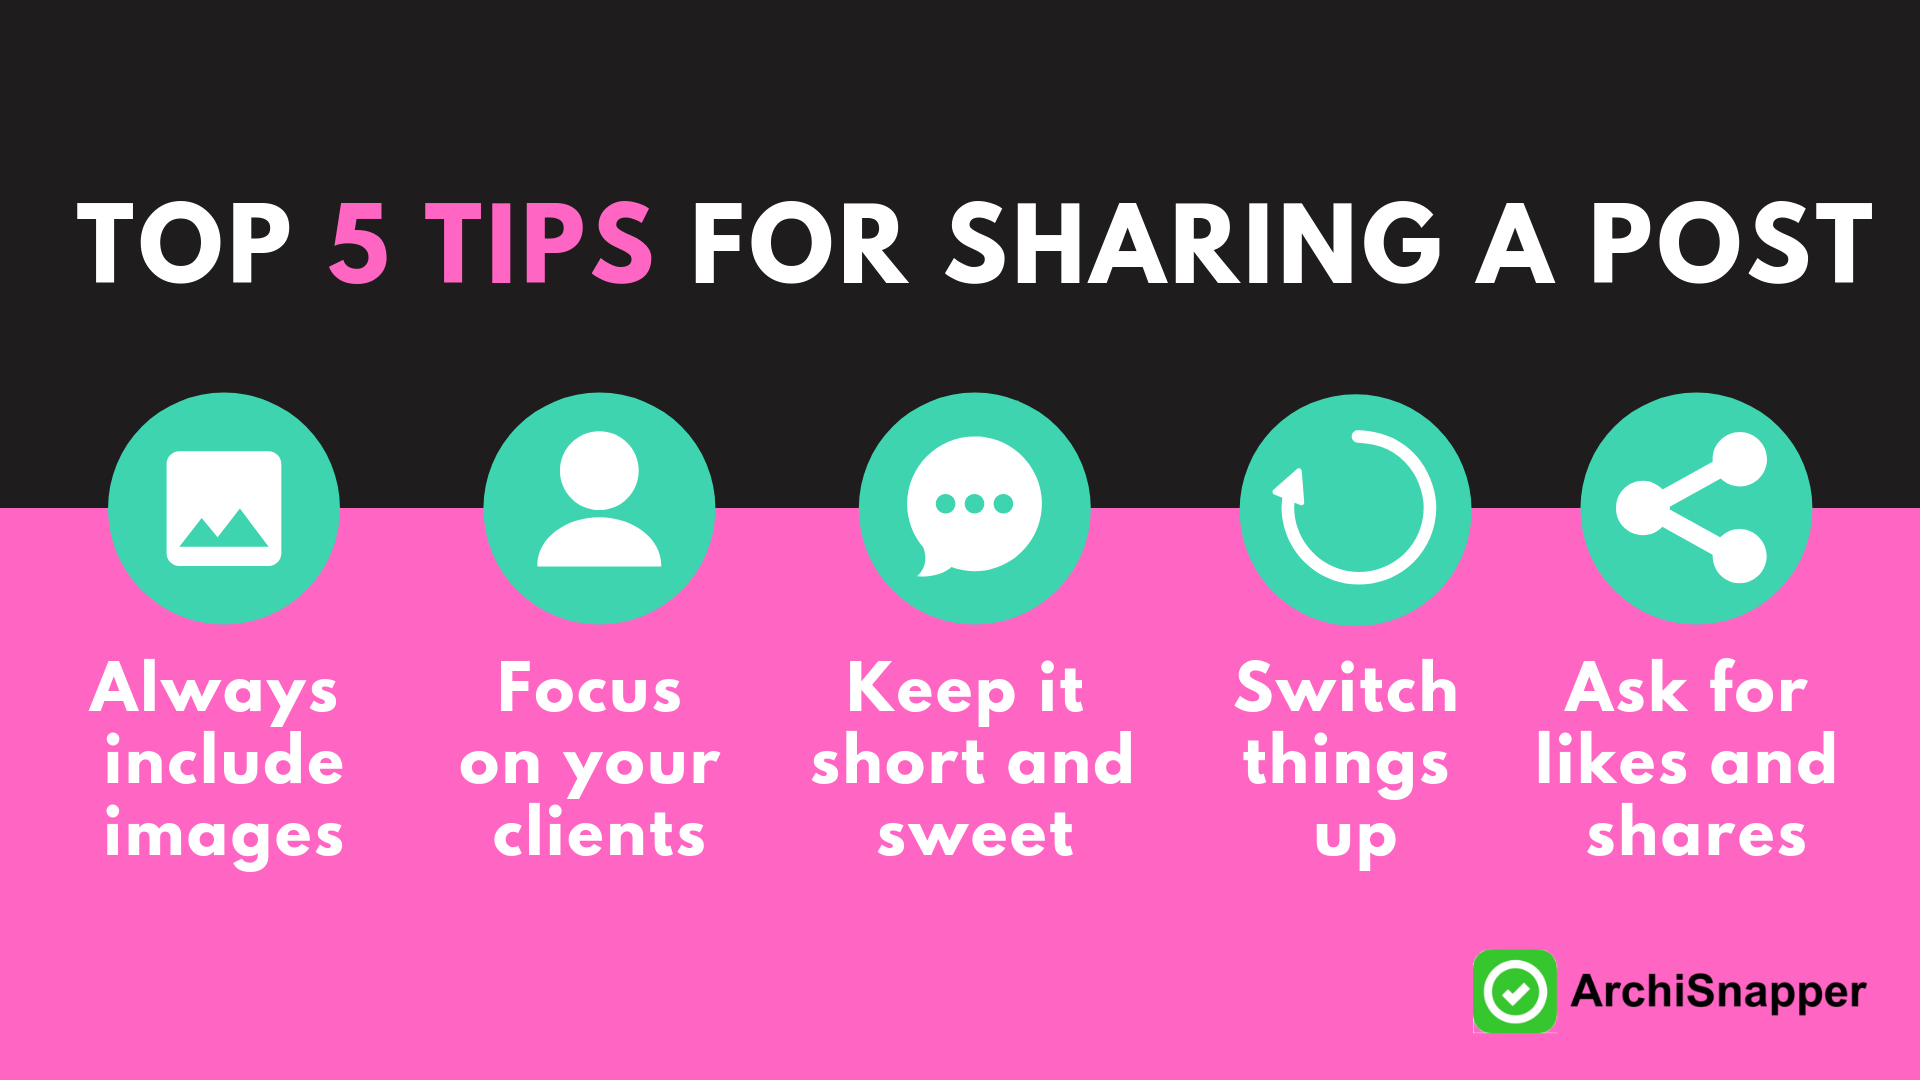 How to share a post on Social Media | Archisnapper